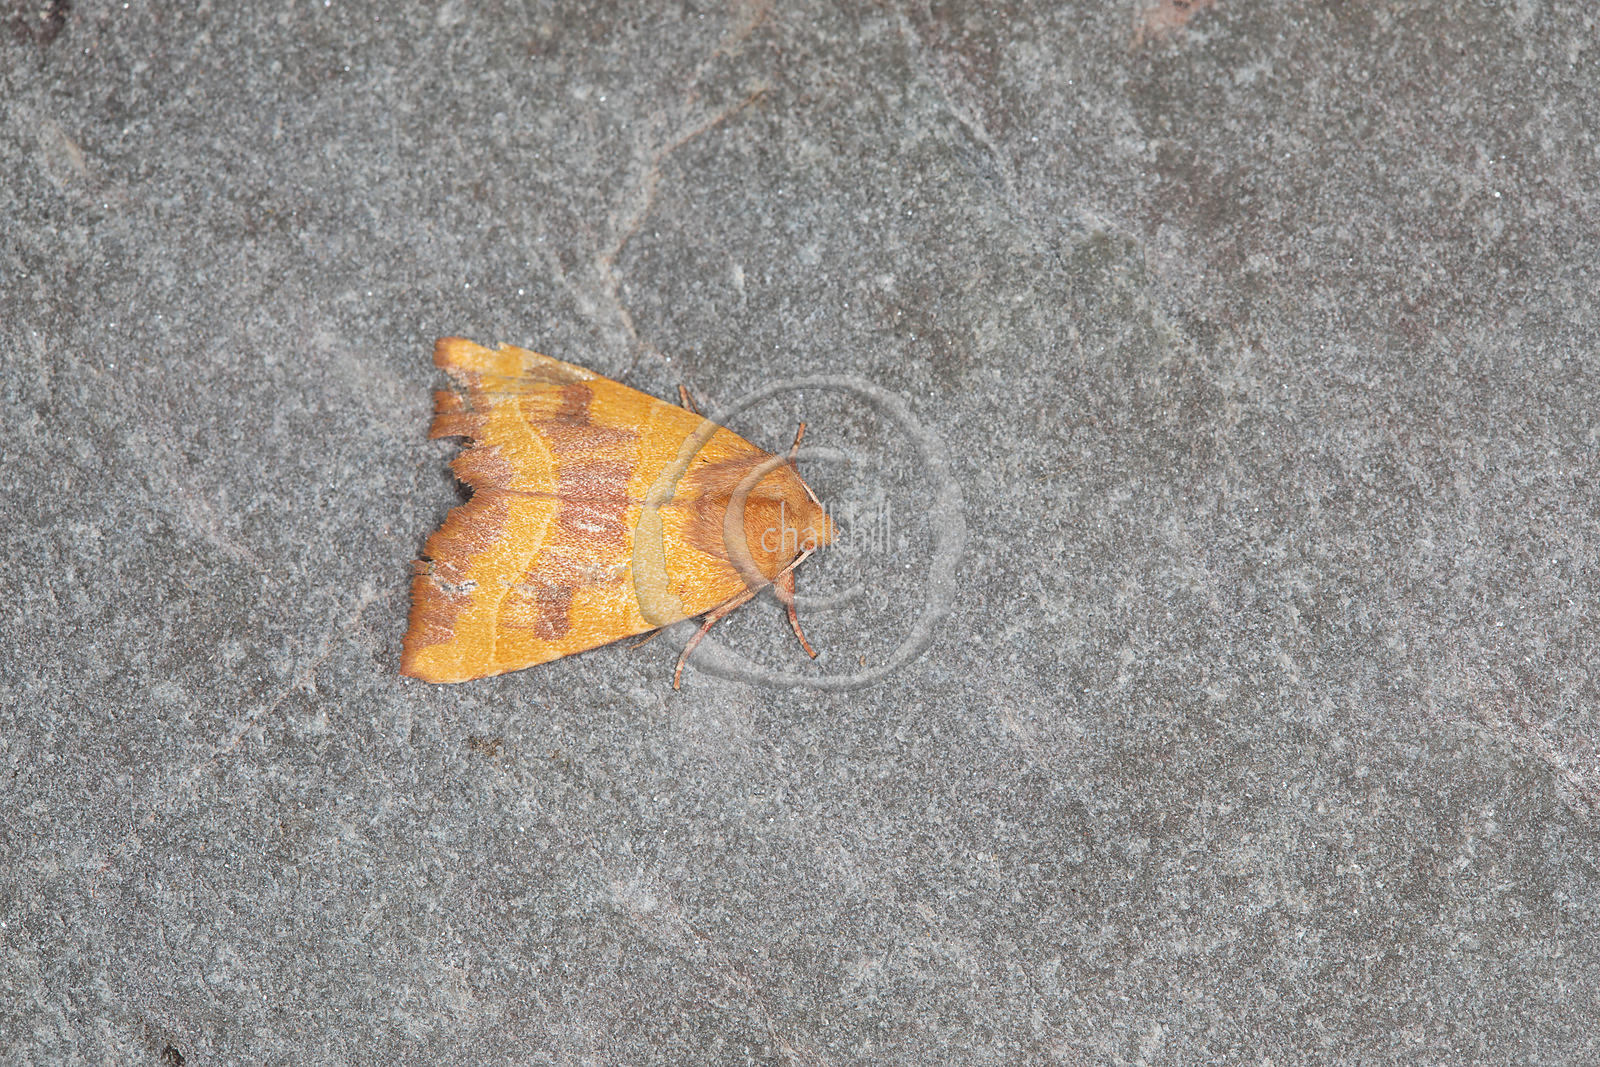 [Atethmia centrago [73.219] Centre-barred Sallow]-[GBR-Flatford Mill]